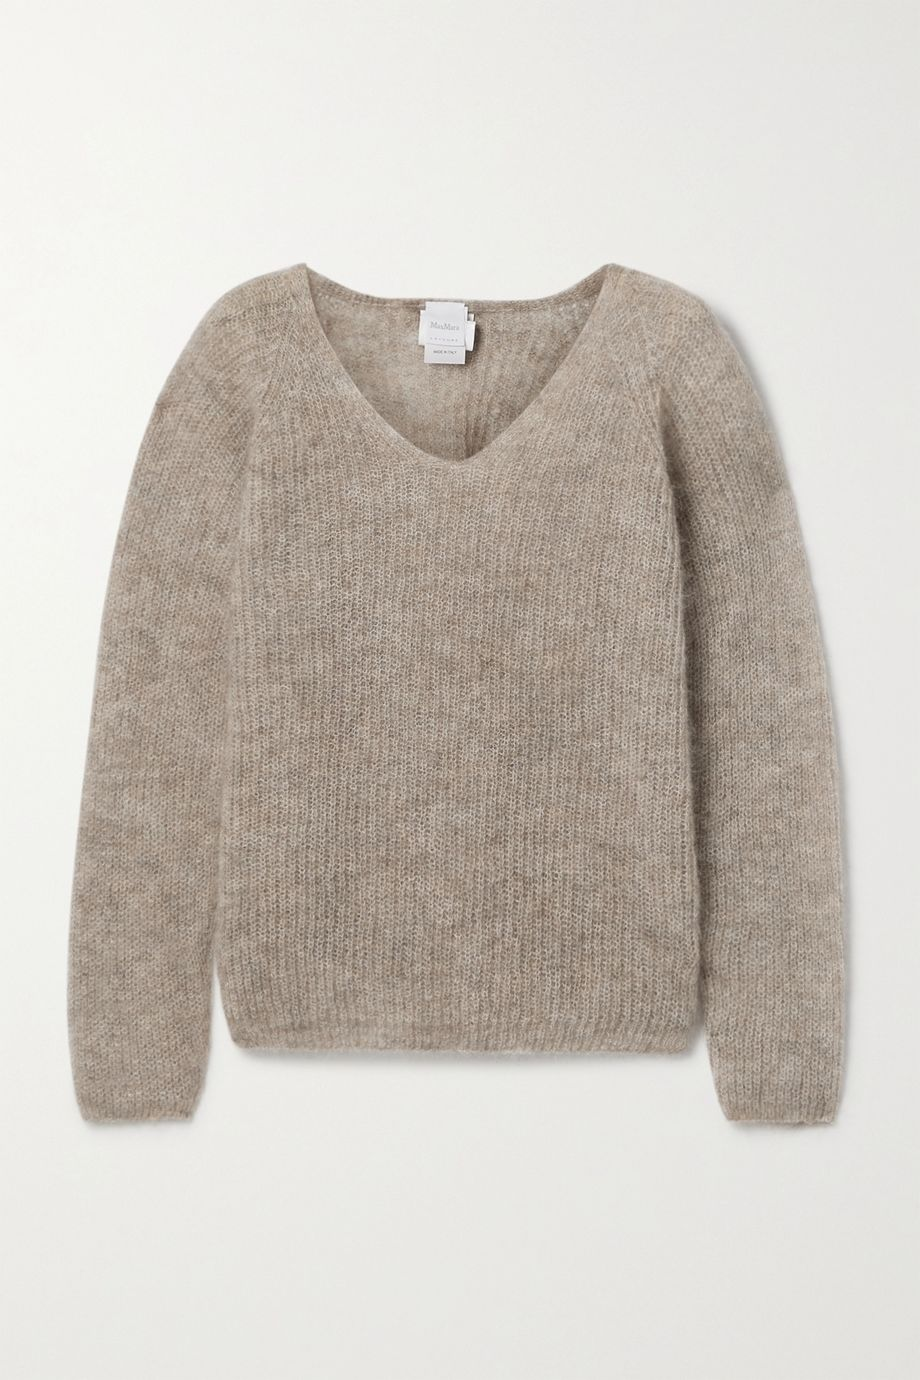 Max Mara Leisure ribbed mohair-blend sweater